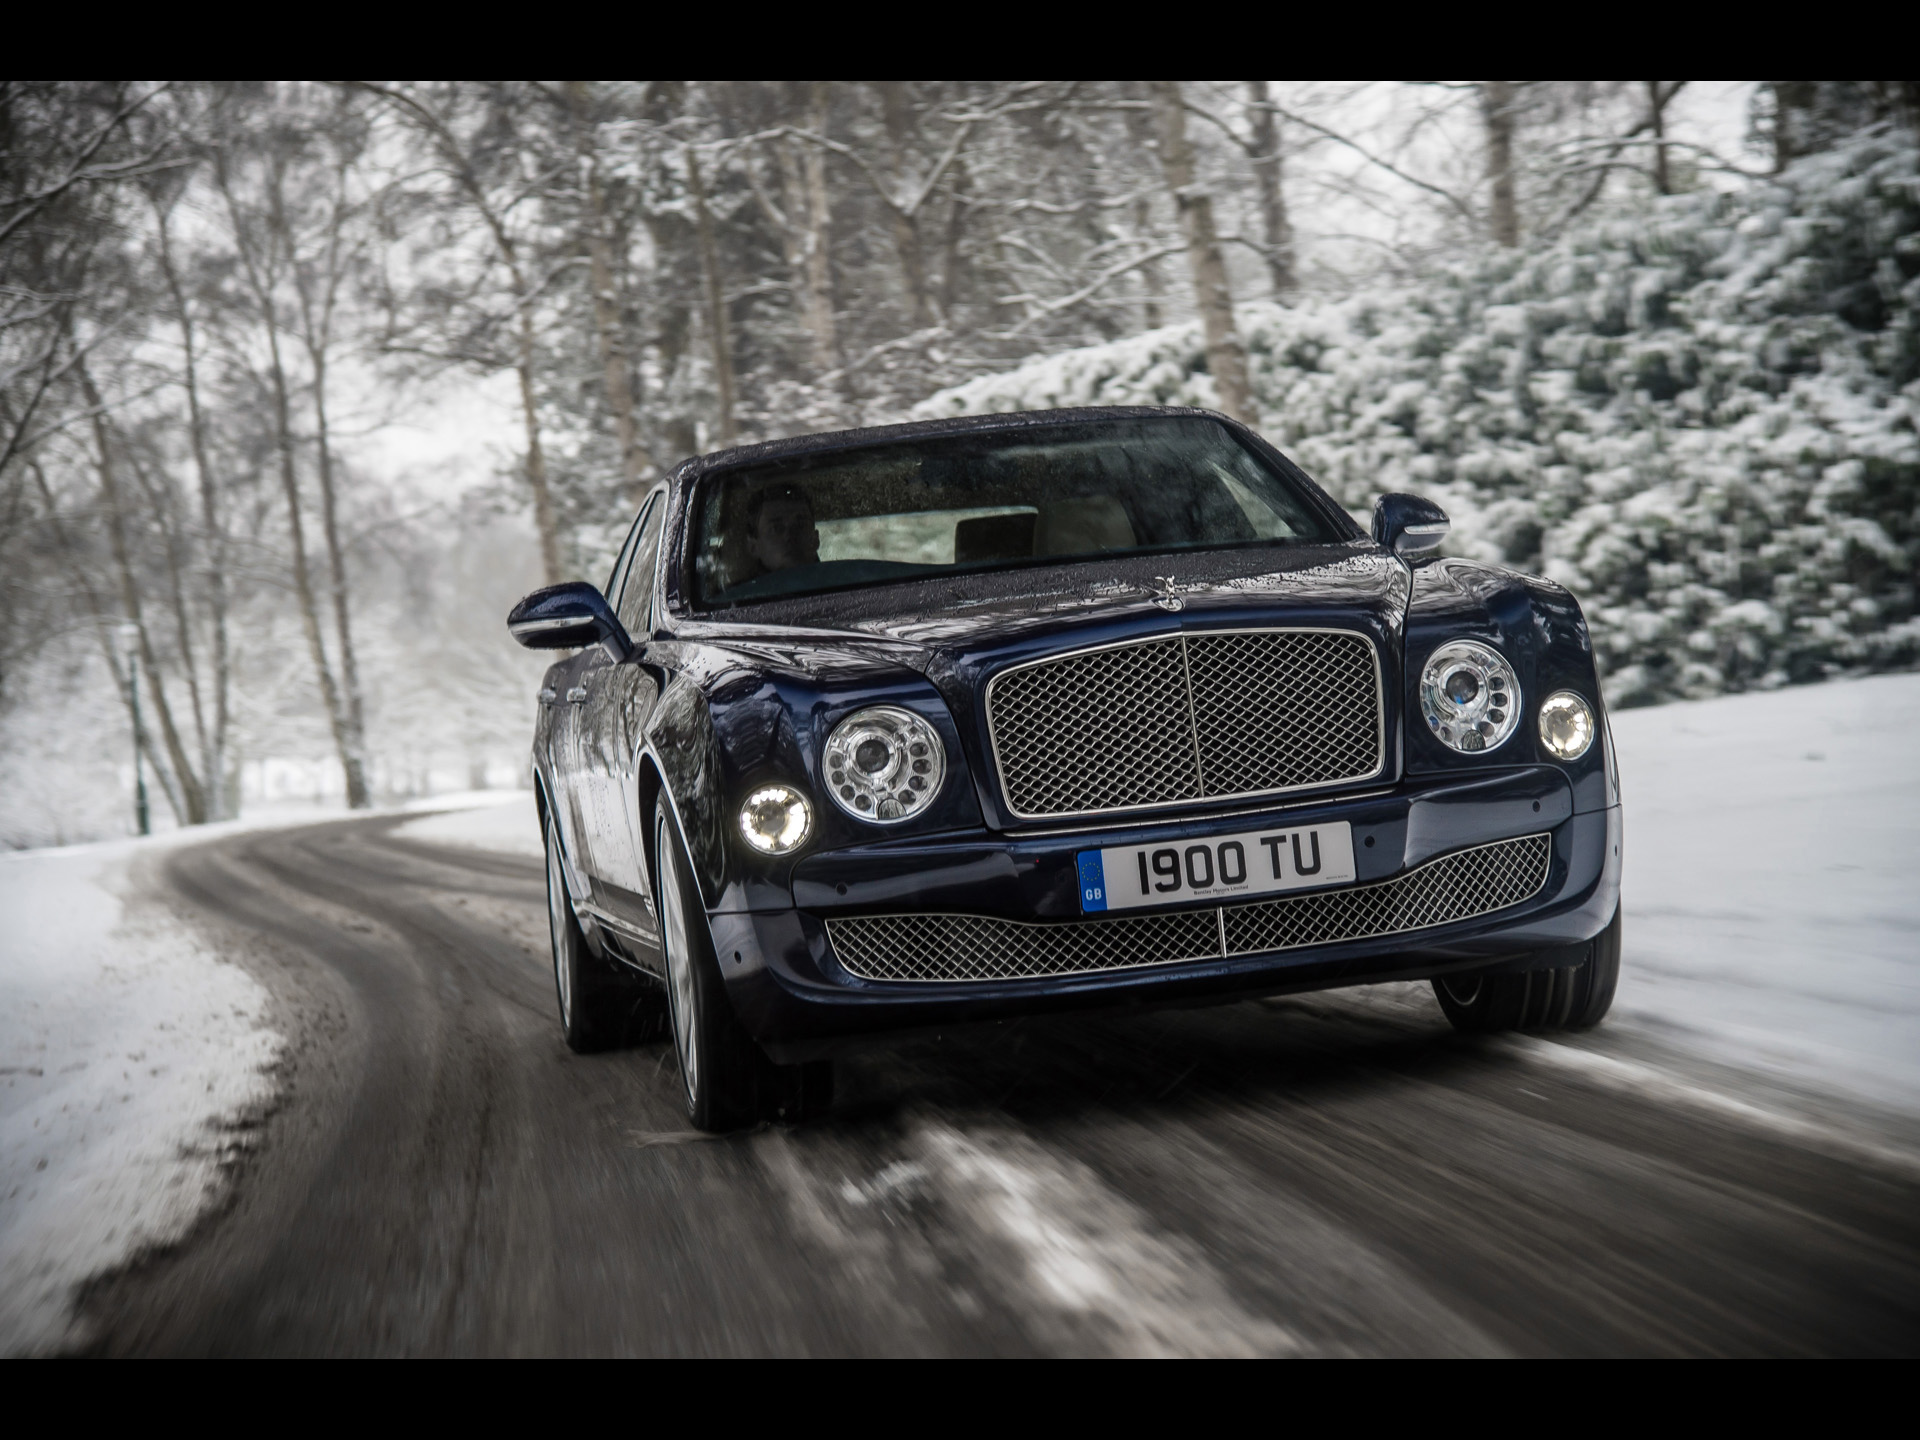 click to free download the wallpaper--Royal Car Images of Bentley Mulsanne, Blue and Decent Car Turning a Corner, Graceful Enough 1920X1440 free wallpaper download